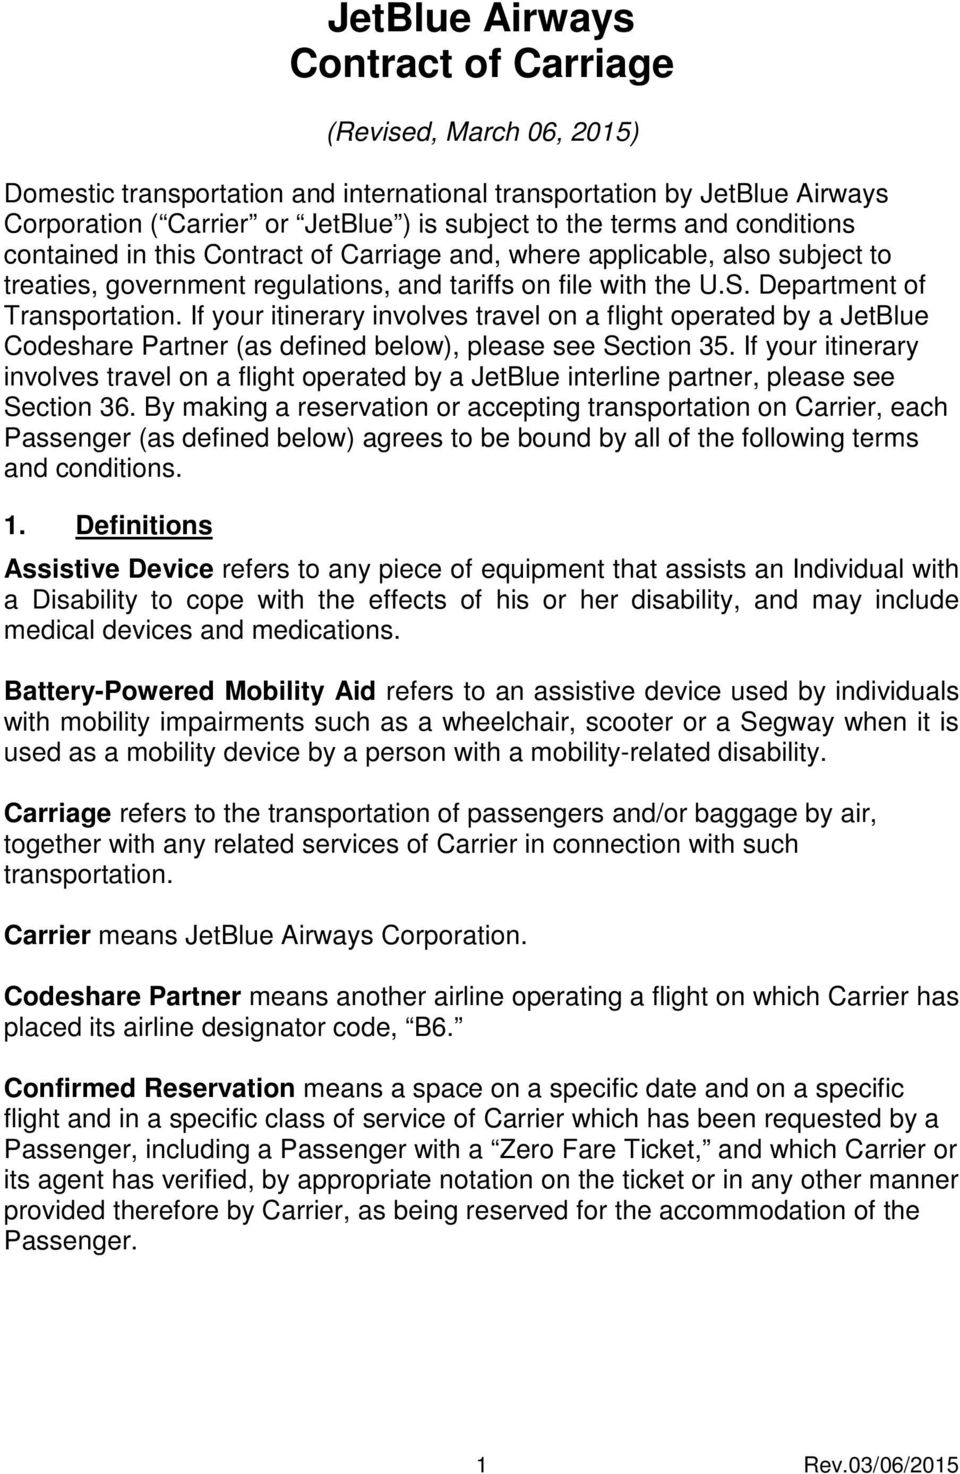 If your itinerary involves travel on a flight operated by a JetBlue Codeshare Partner (as defined below), please see Section 35.